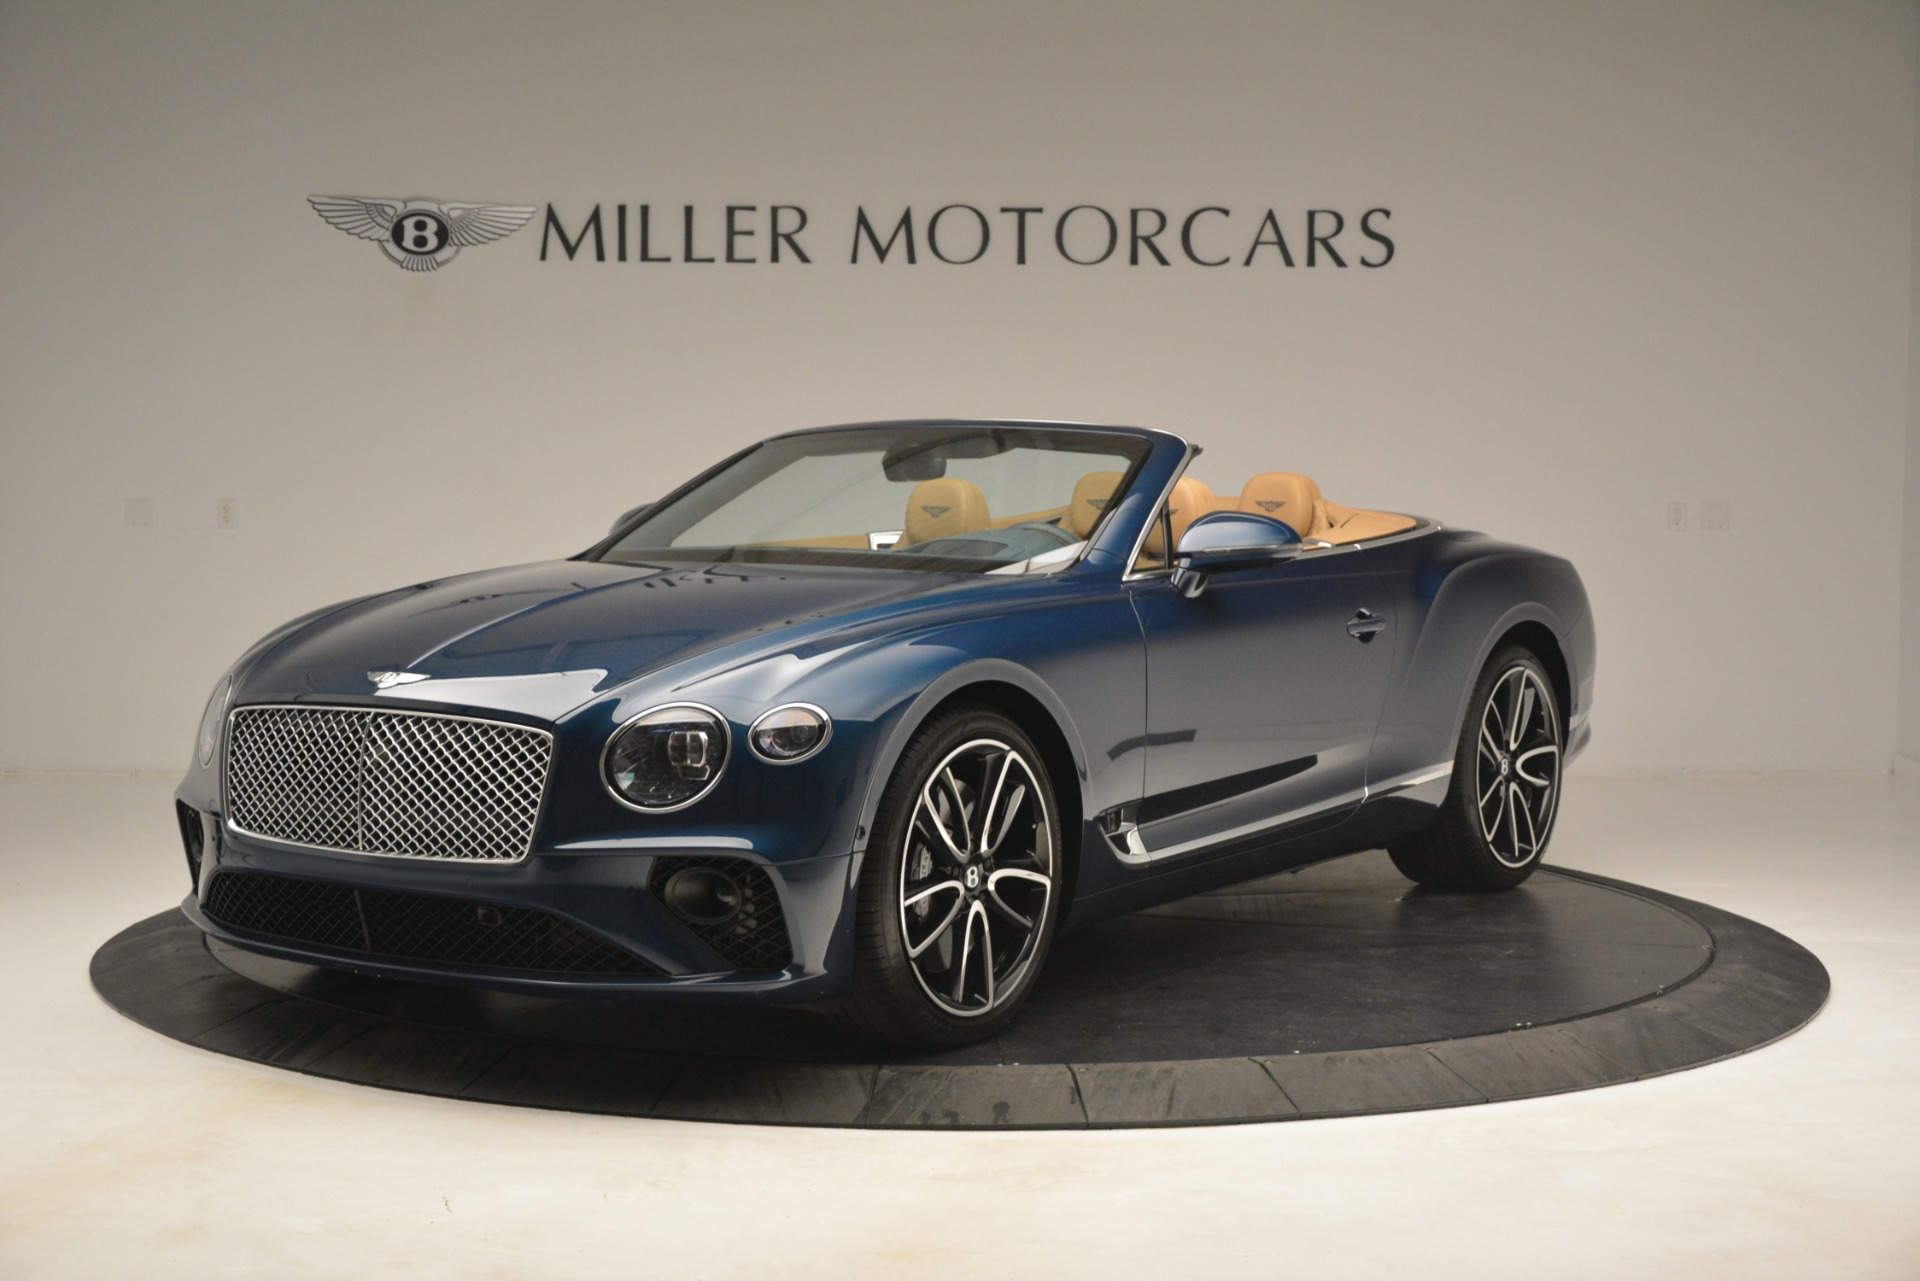 New 2020 Bentley Continental GTC  For Sale In Westport, CT 2865_main